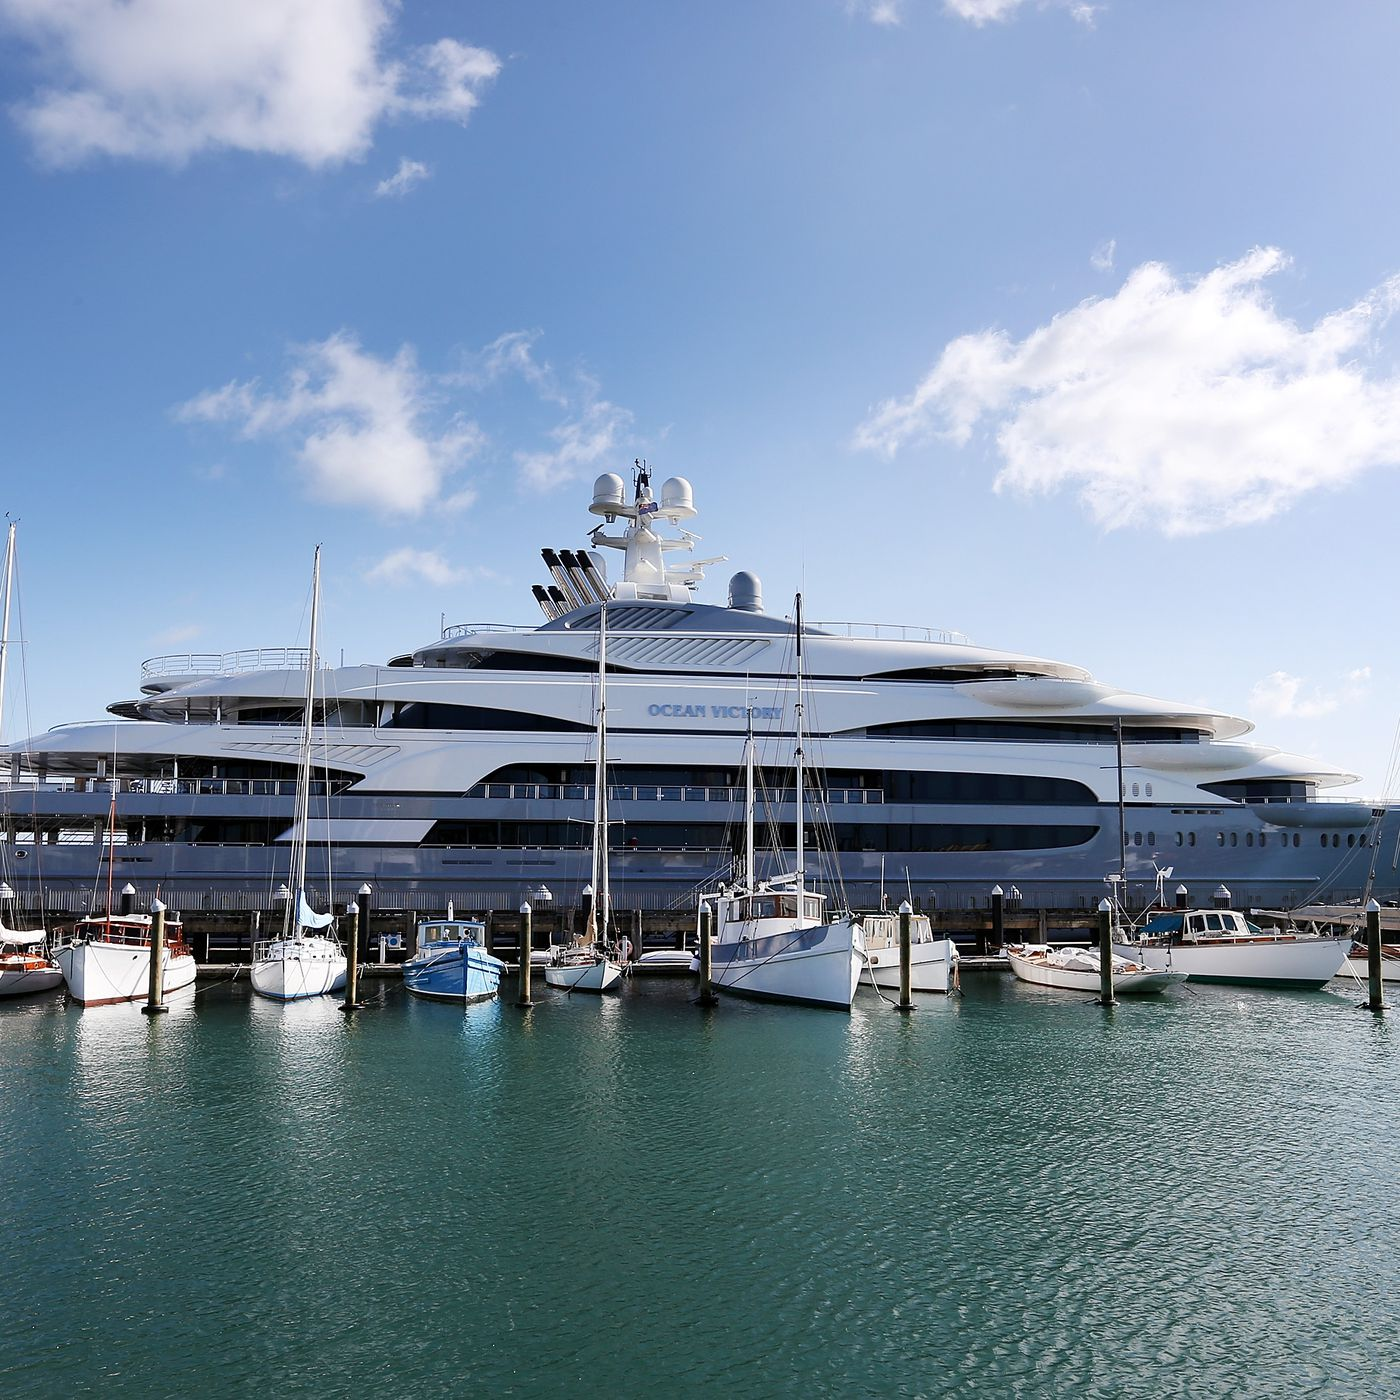 Superyacht sales are on the rise - Vox